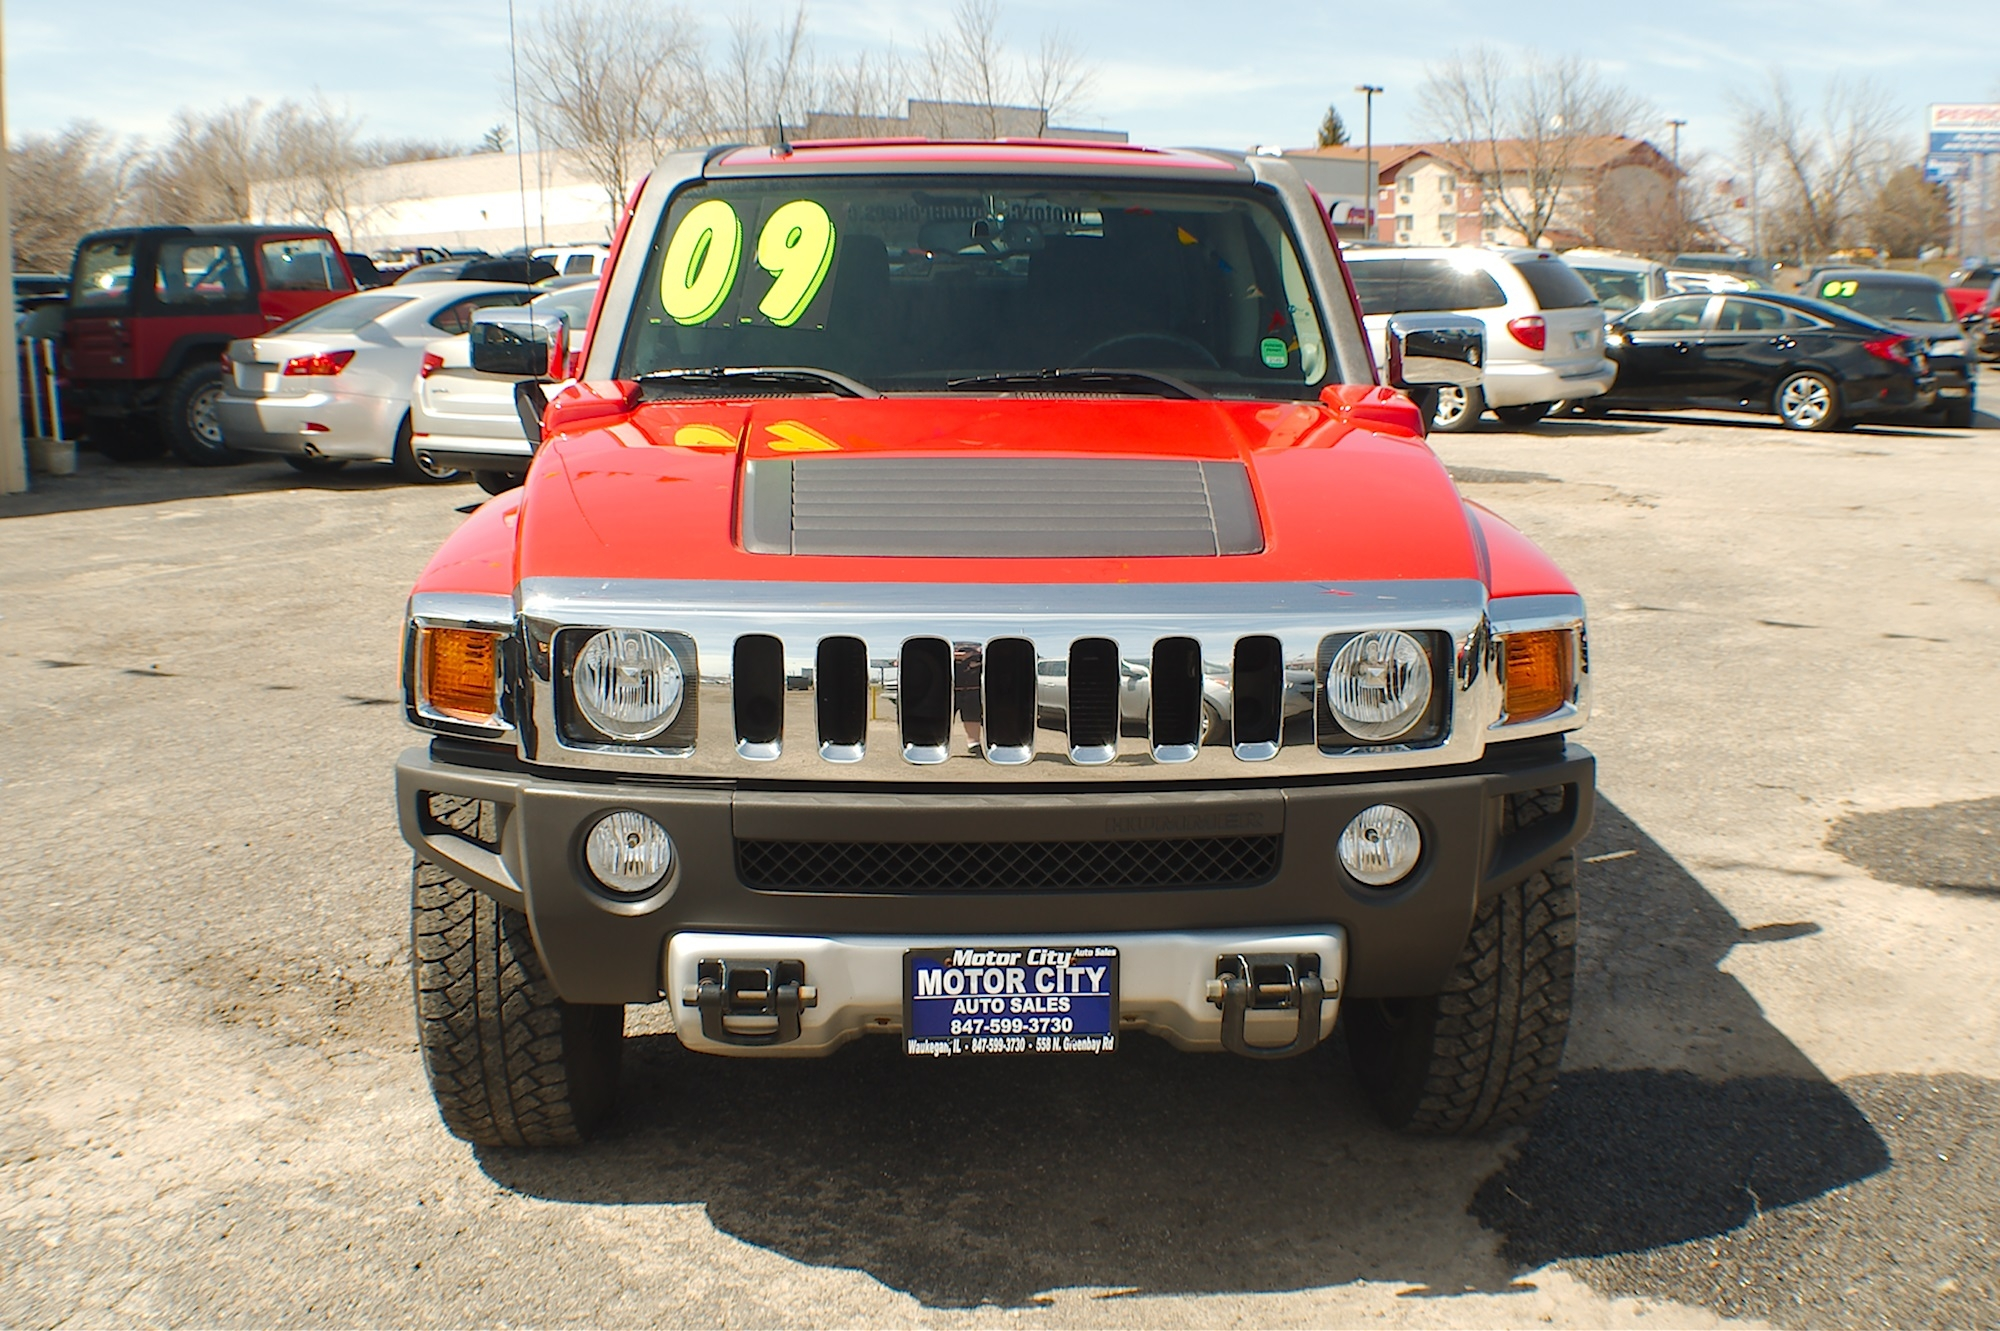 2009 Hummer H3 Red 4x4 Used SUV sale Gurnee Kenosha Mchenry Chicago Illinois